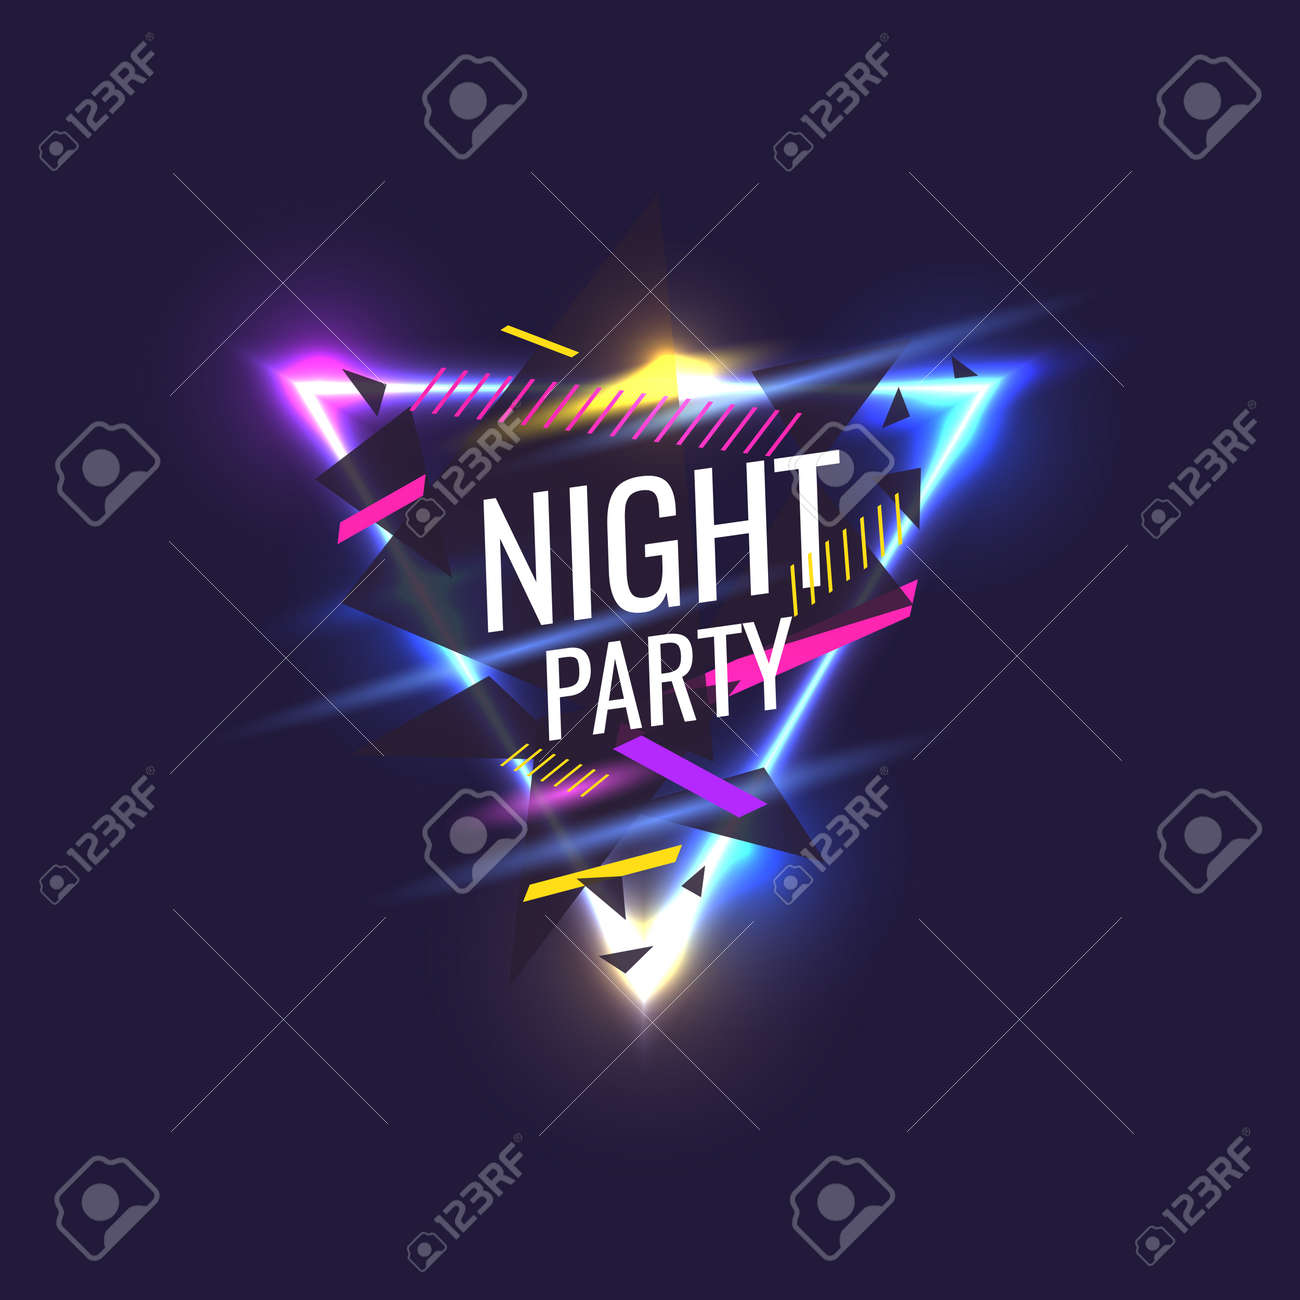 Original Poster For Night Party Geometric Shapes And Neon Glow